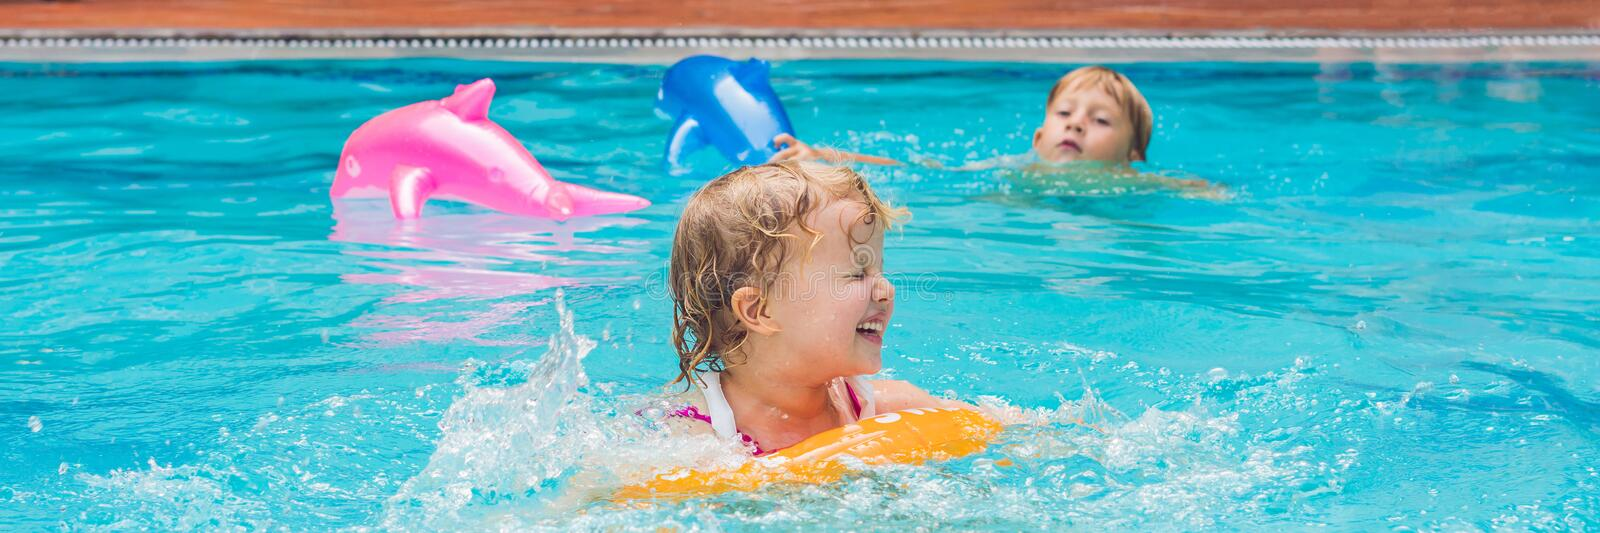 Pretty little girl swimming in outdoor pool and have a fun with inflatable circle BANNER, long format royalty free stock photo